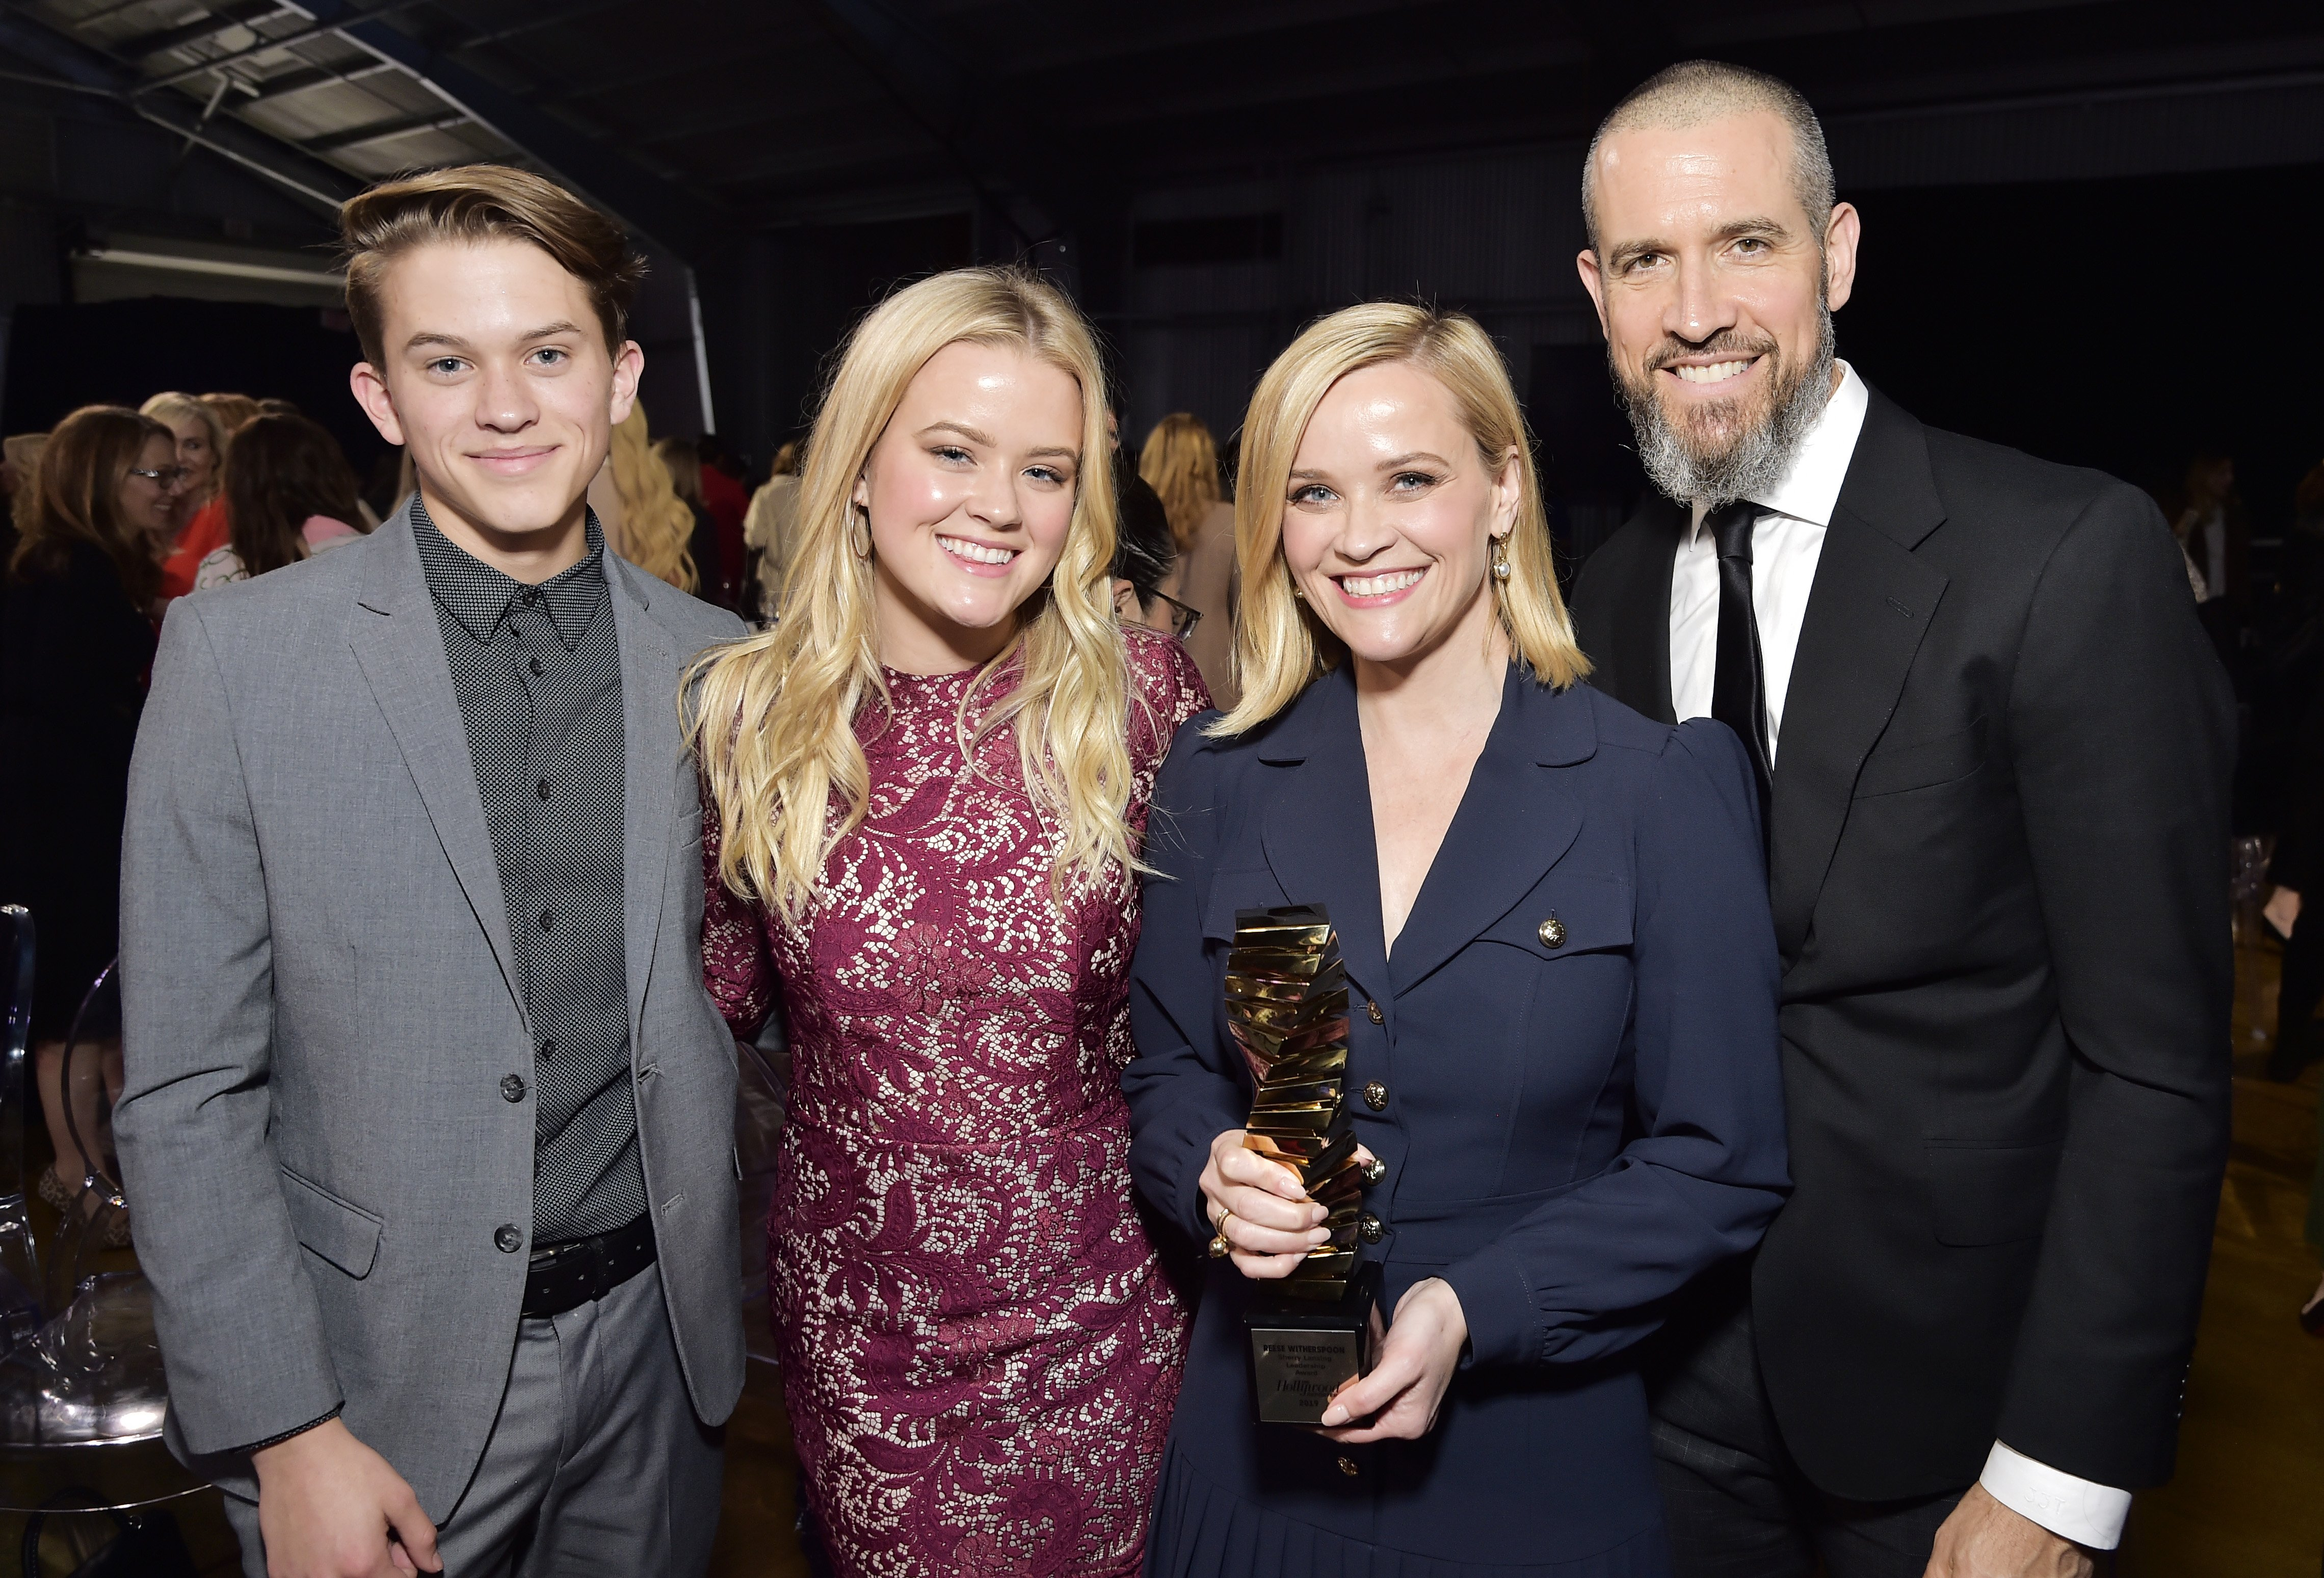 """Left to Right are Deacon Phillippe, Ava Phillippe, Reese Witherspoon and Jim Toth, December, 2019. """" Photo: Getty Images."""